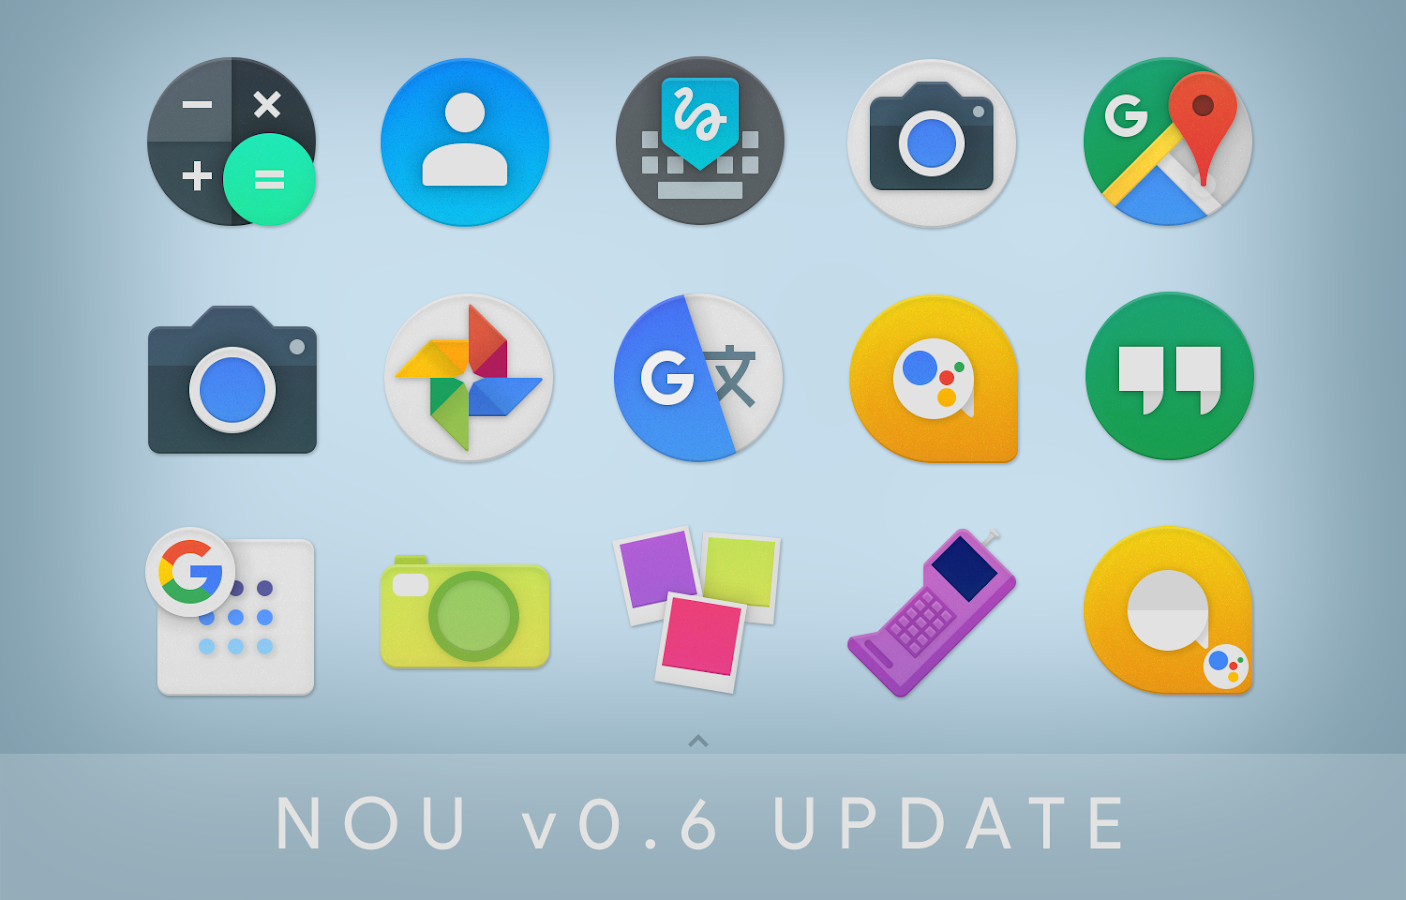 NOU - Icon Pack Screenshot 4